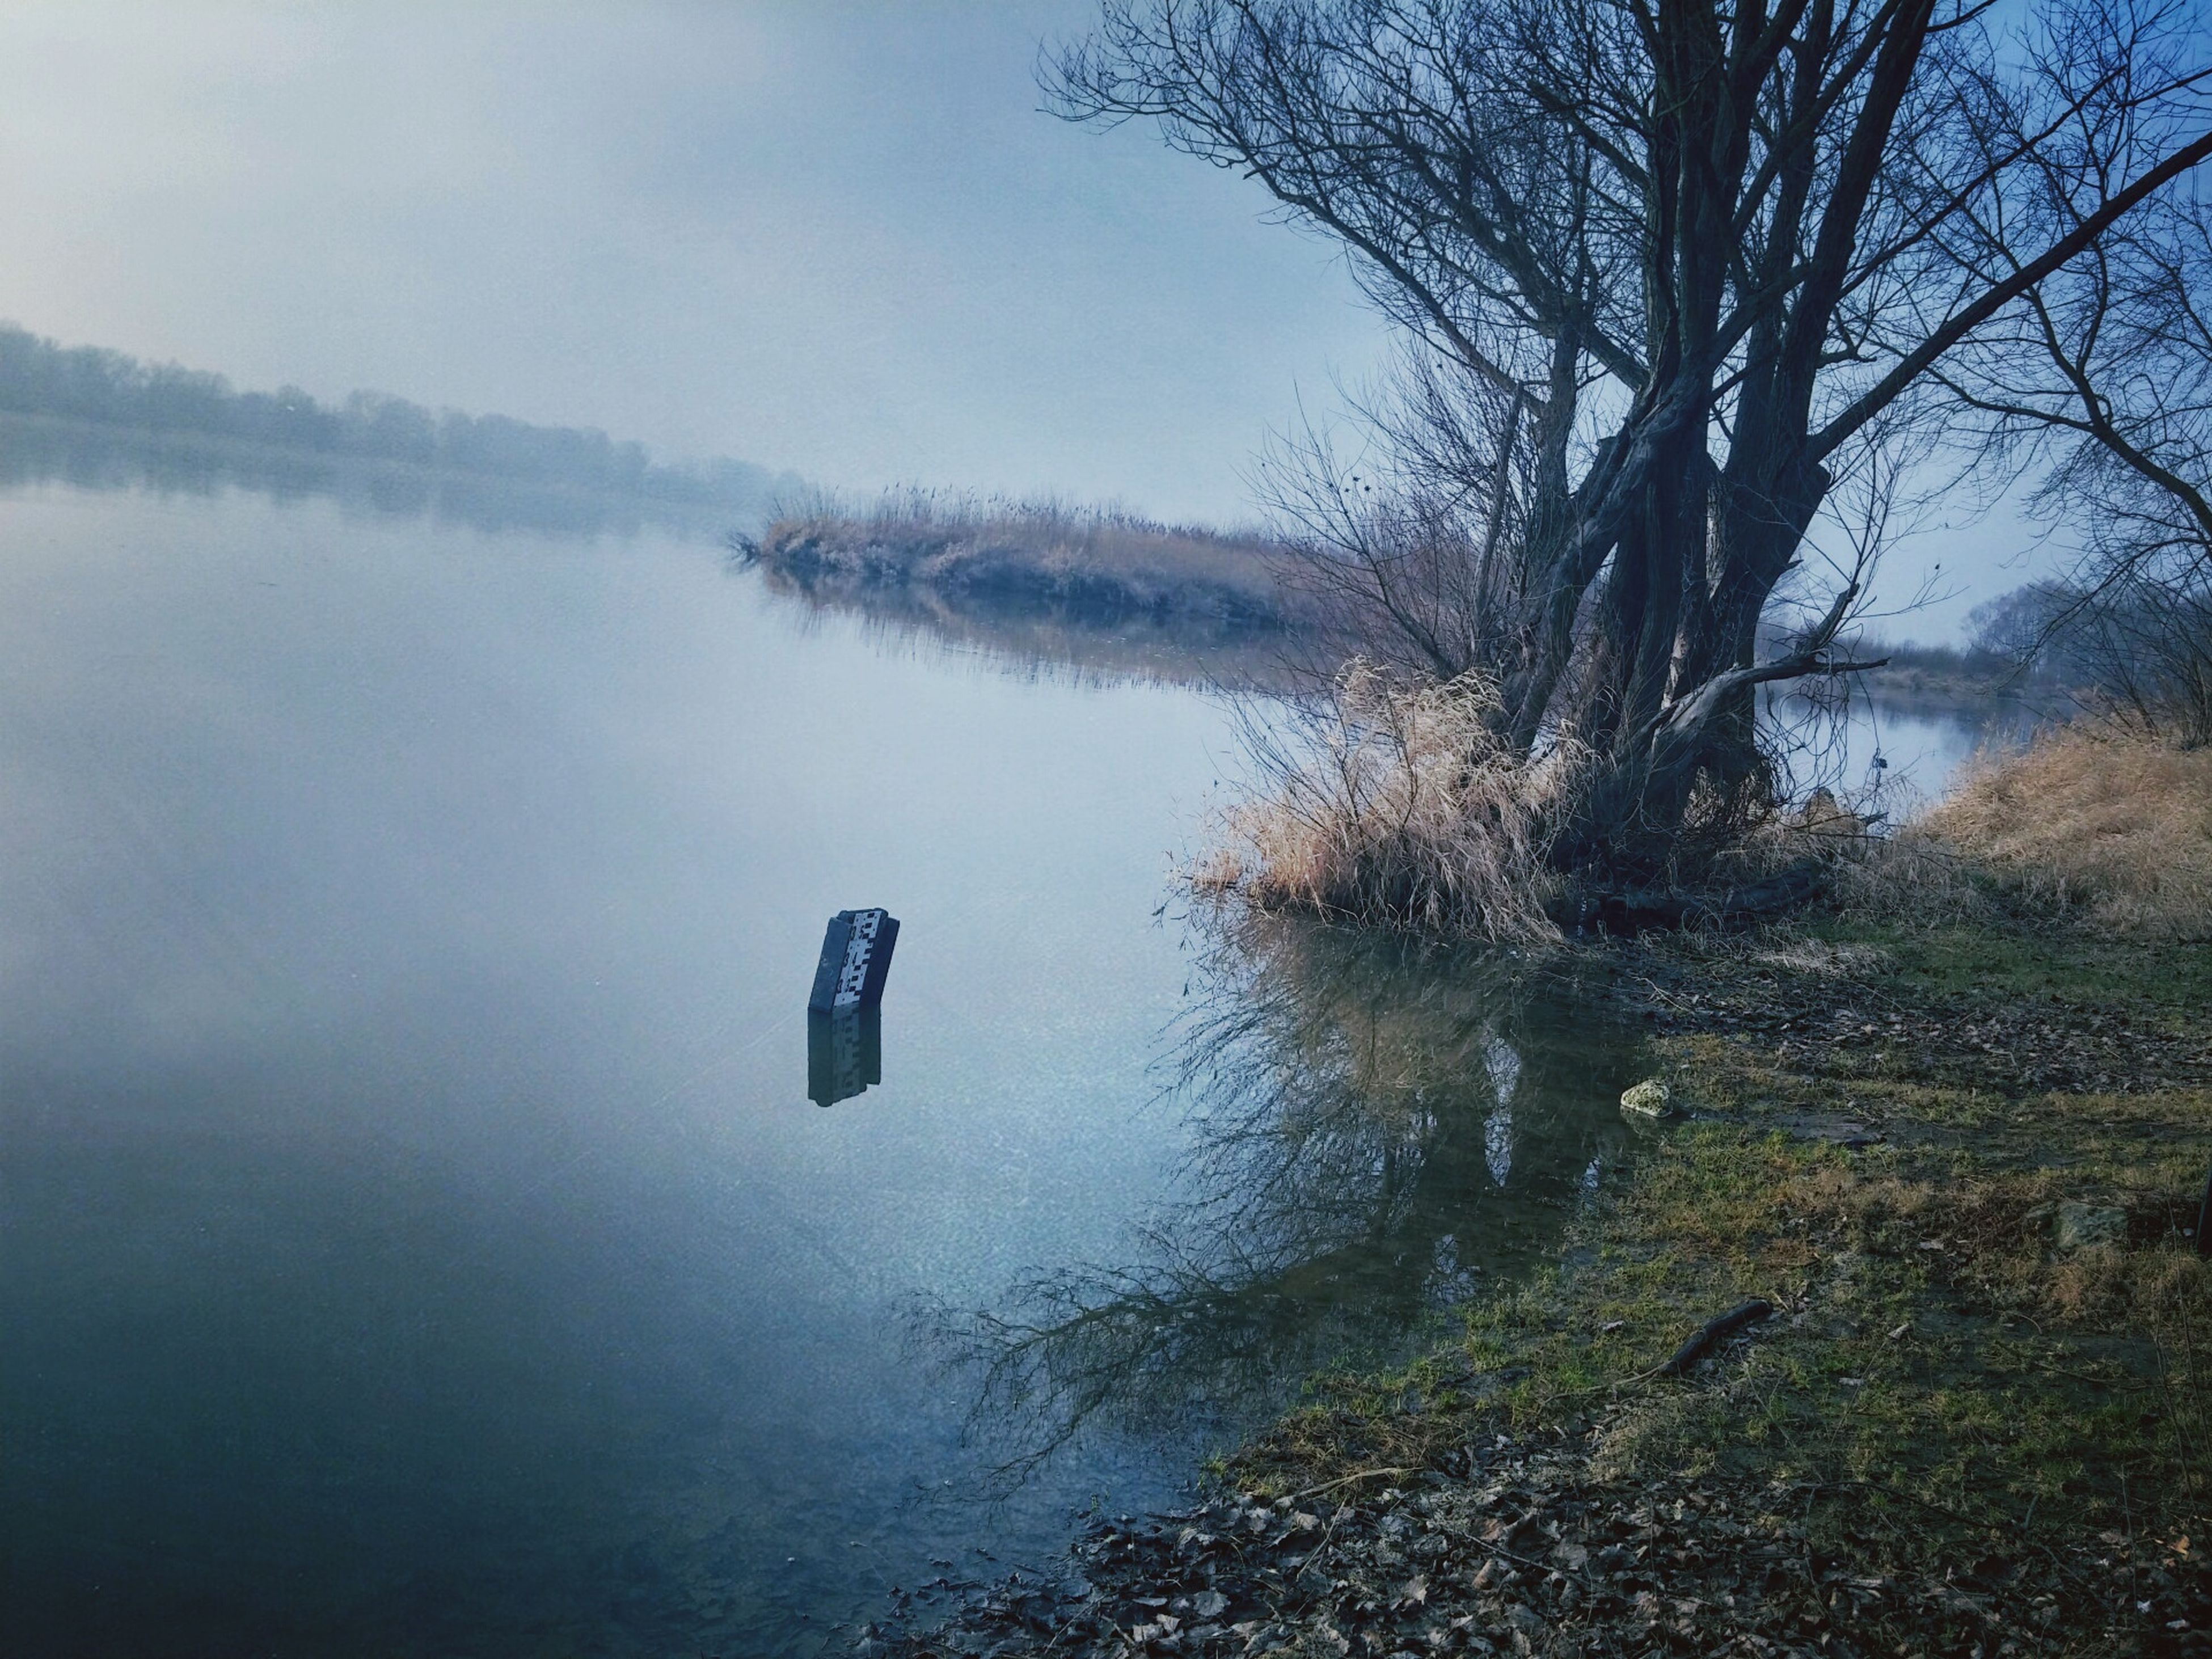 water, lake, tranquility, reflection, tranquil scene, tree, scenics, nature, beauty in nature, bare tree, waterfront, sky, lakeshore, calm, idyllic, river, standing water, day, non-urban scene, outdoors